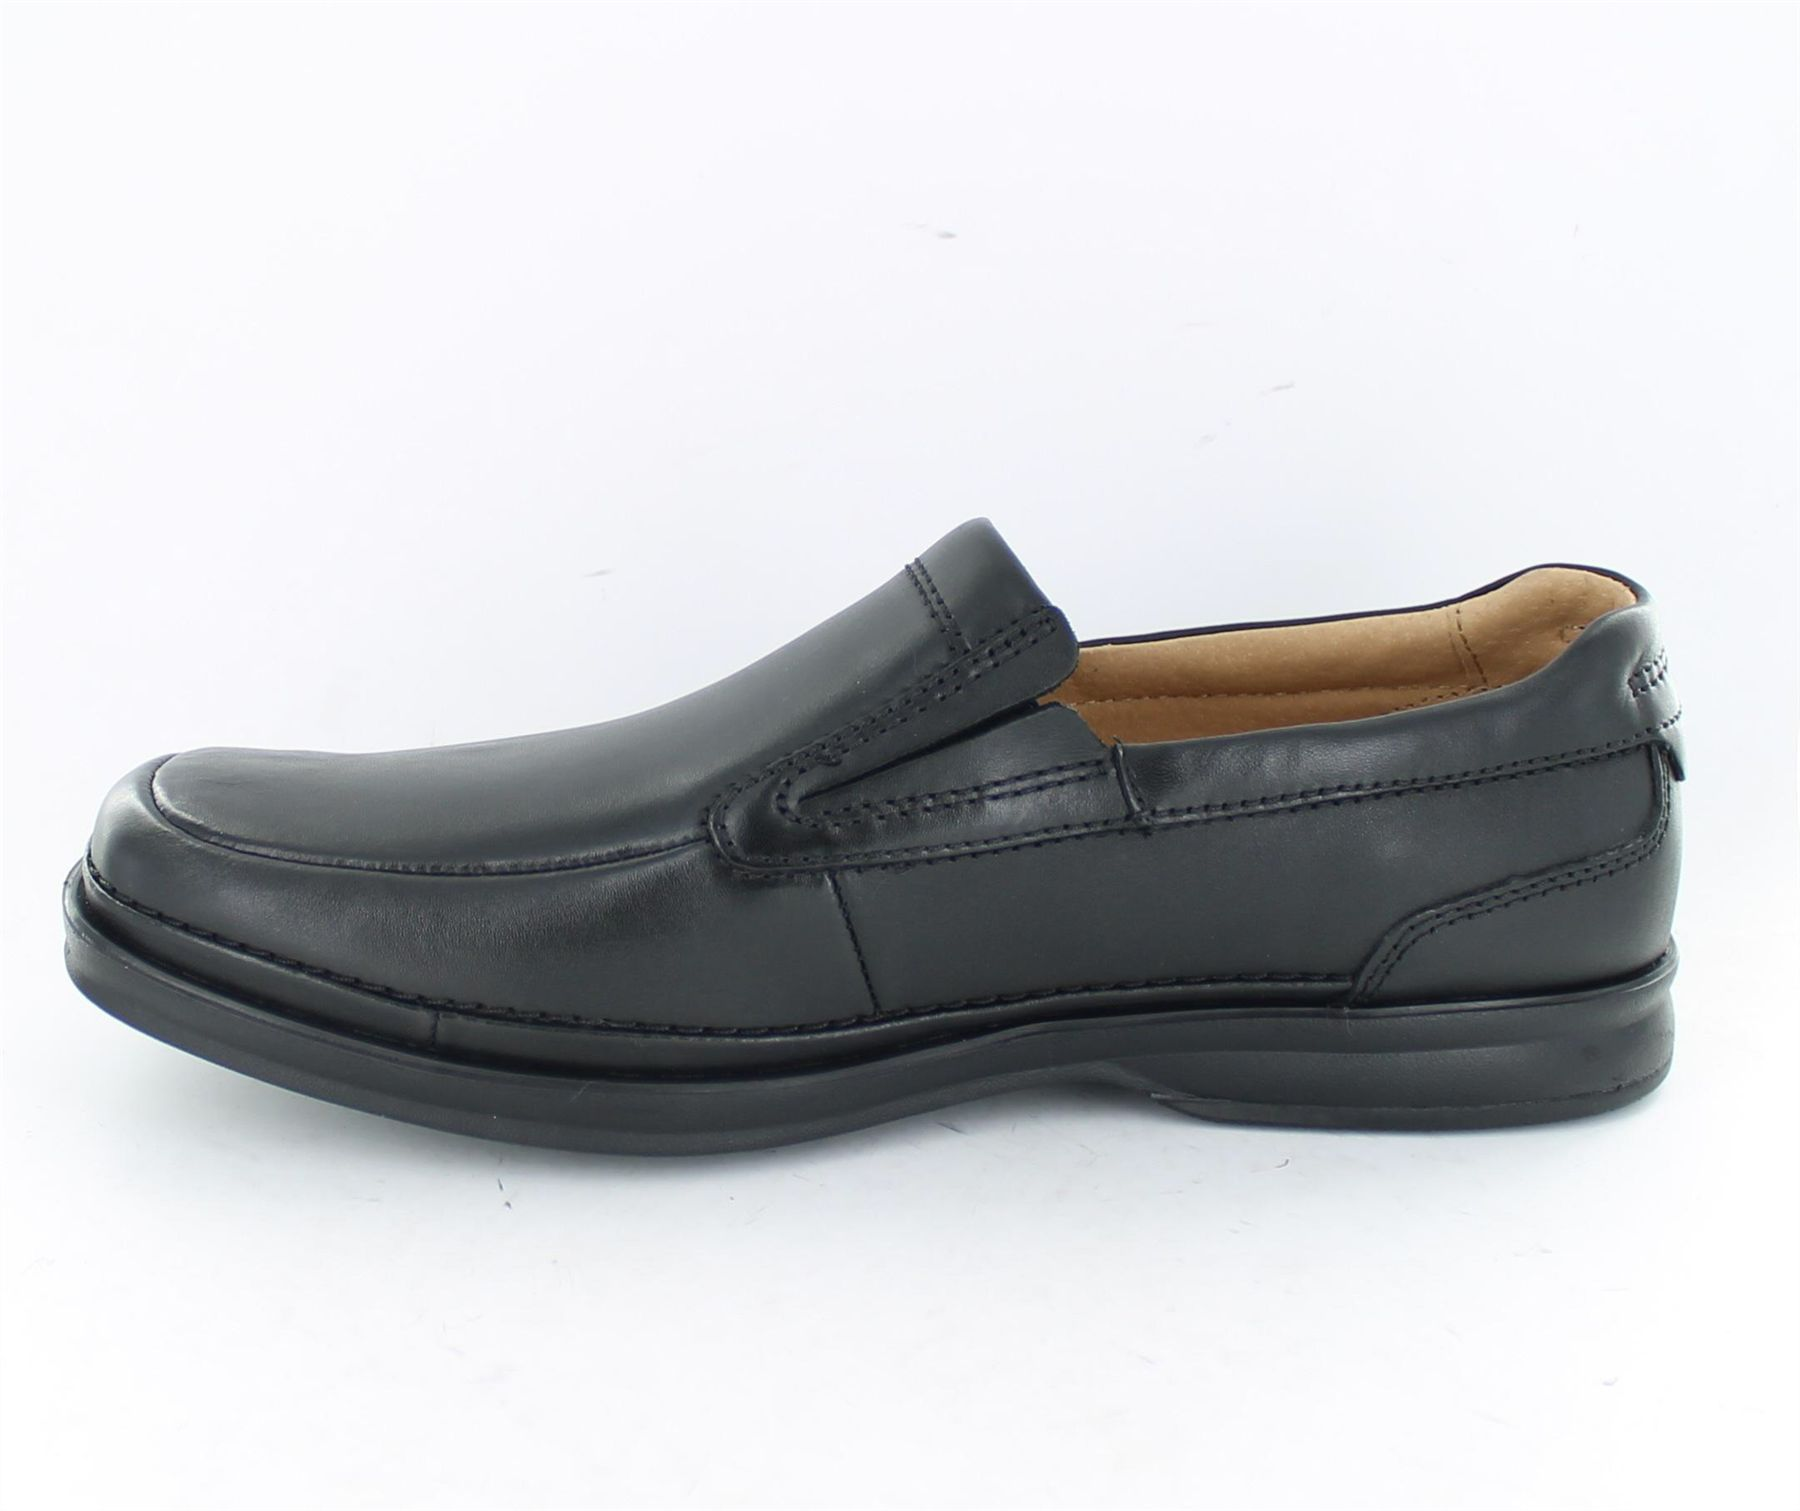 Discover Clarks Shoes and Boots online. We have many different styles for men, women and kids in a variety of size and width fittings with free delivery.